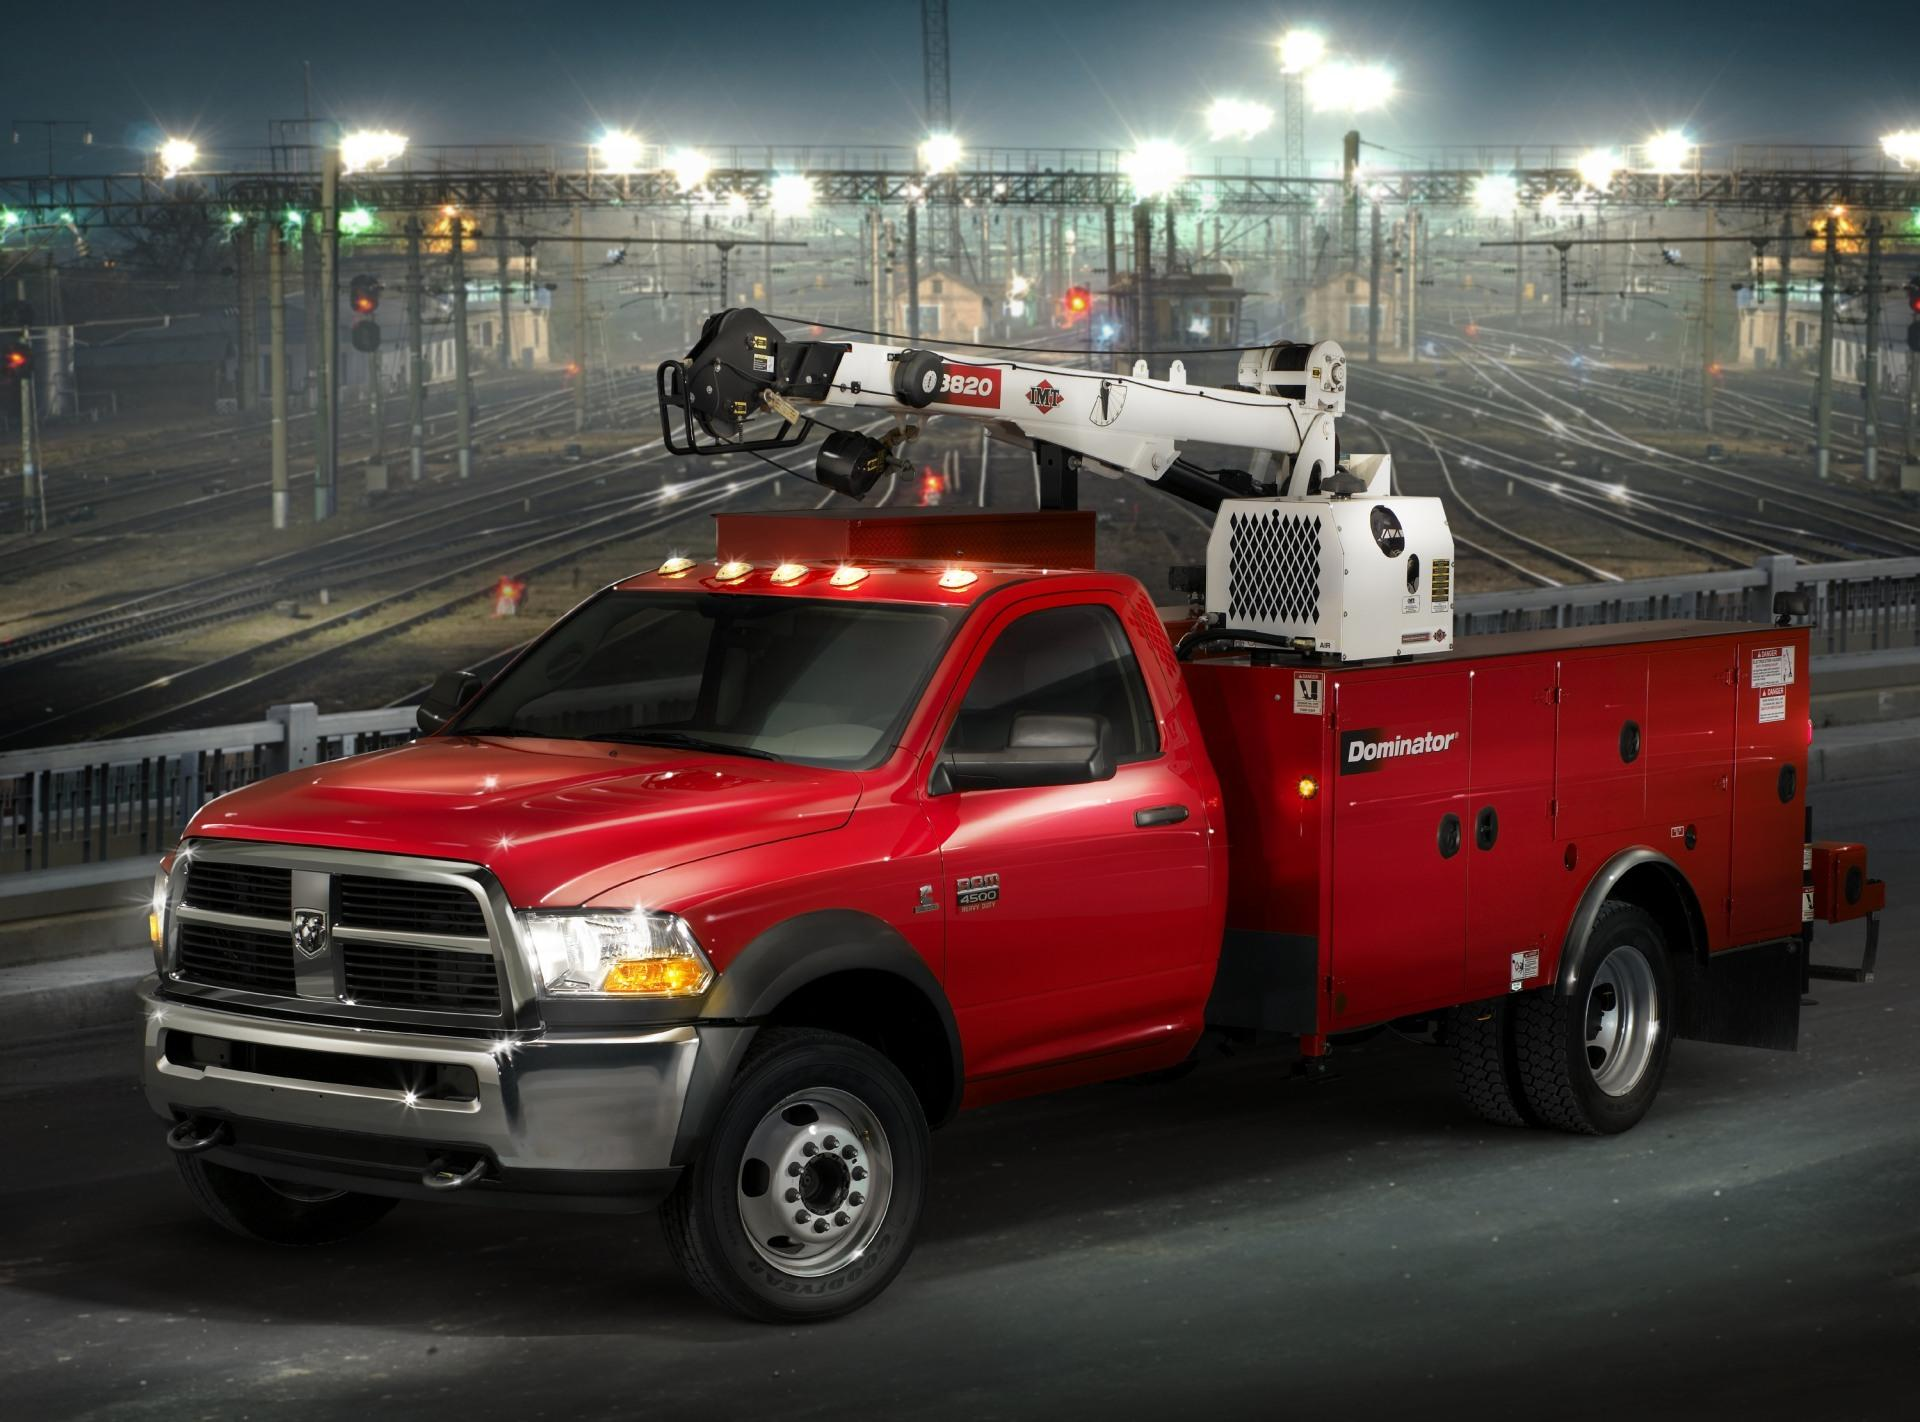 2011 Ram Chassis Cab News And Information Conceptcarz Com